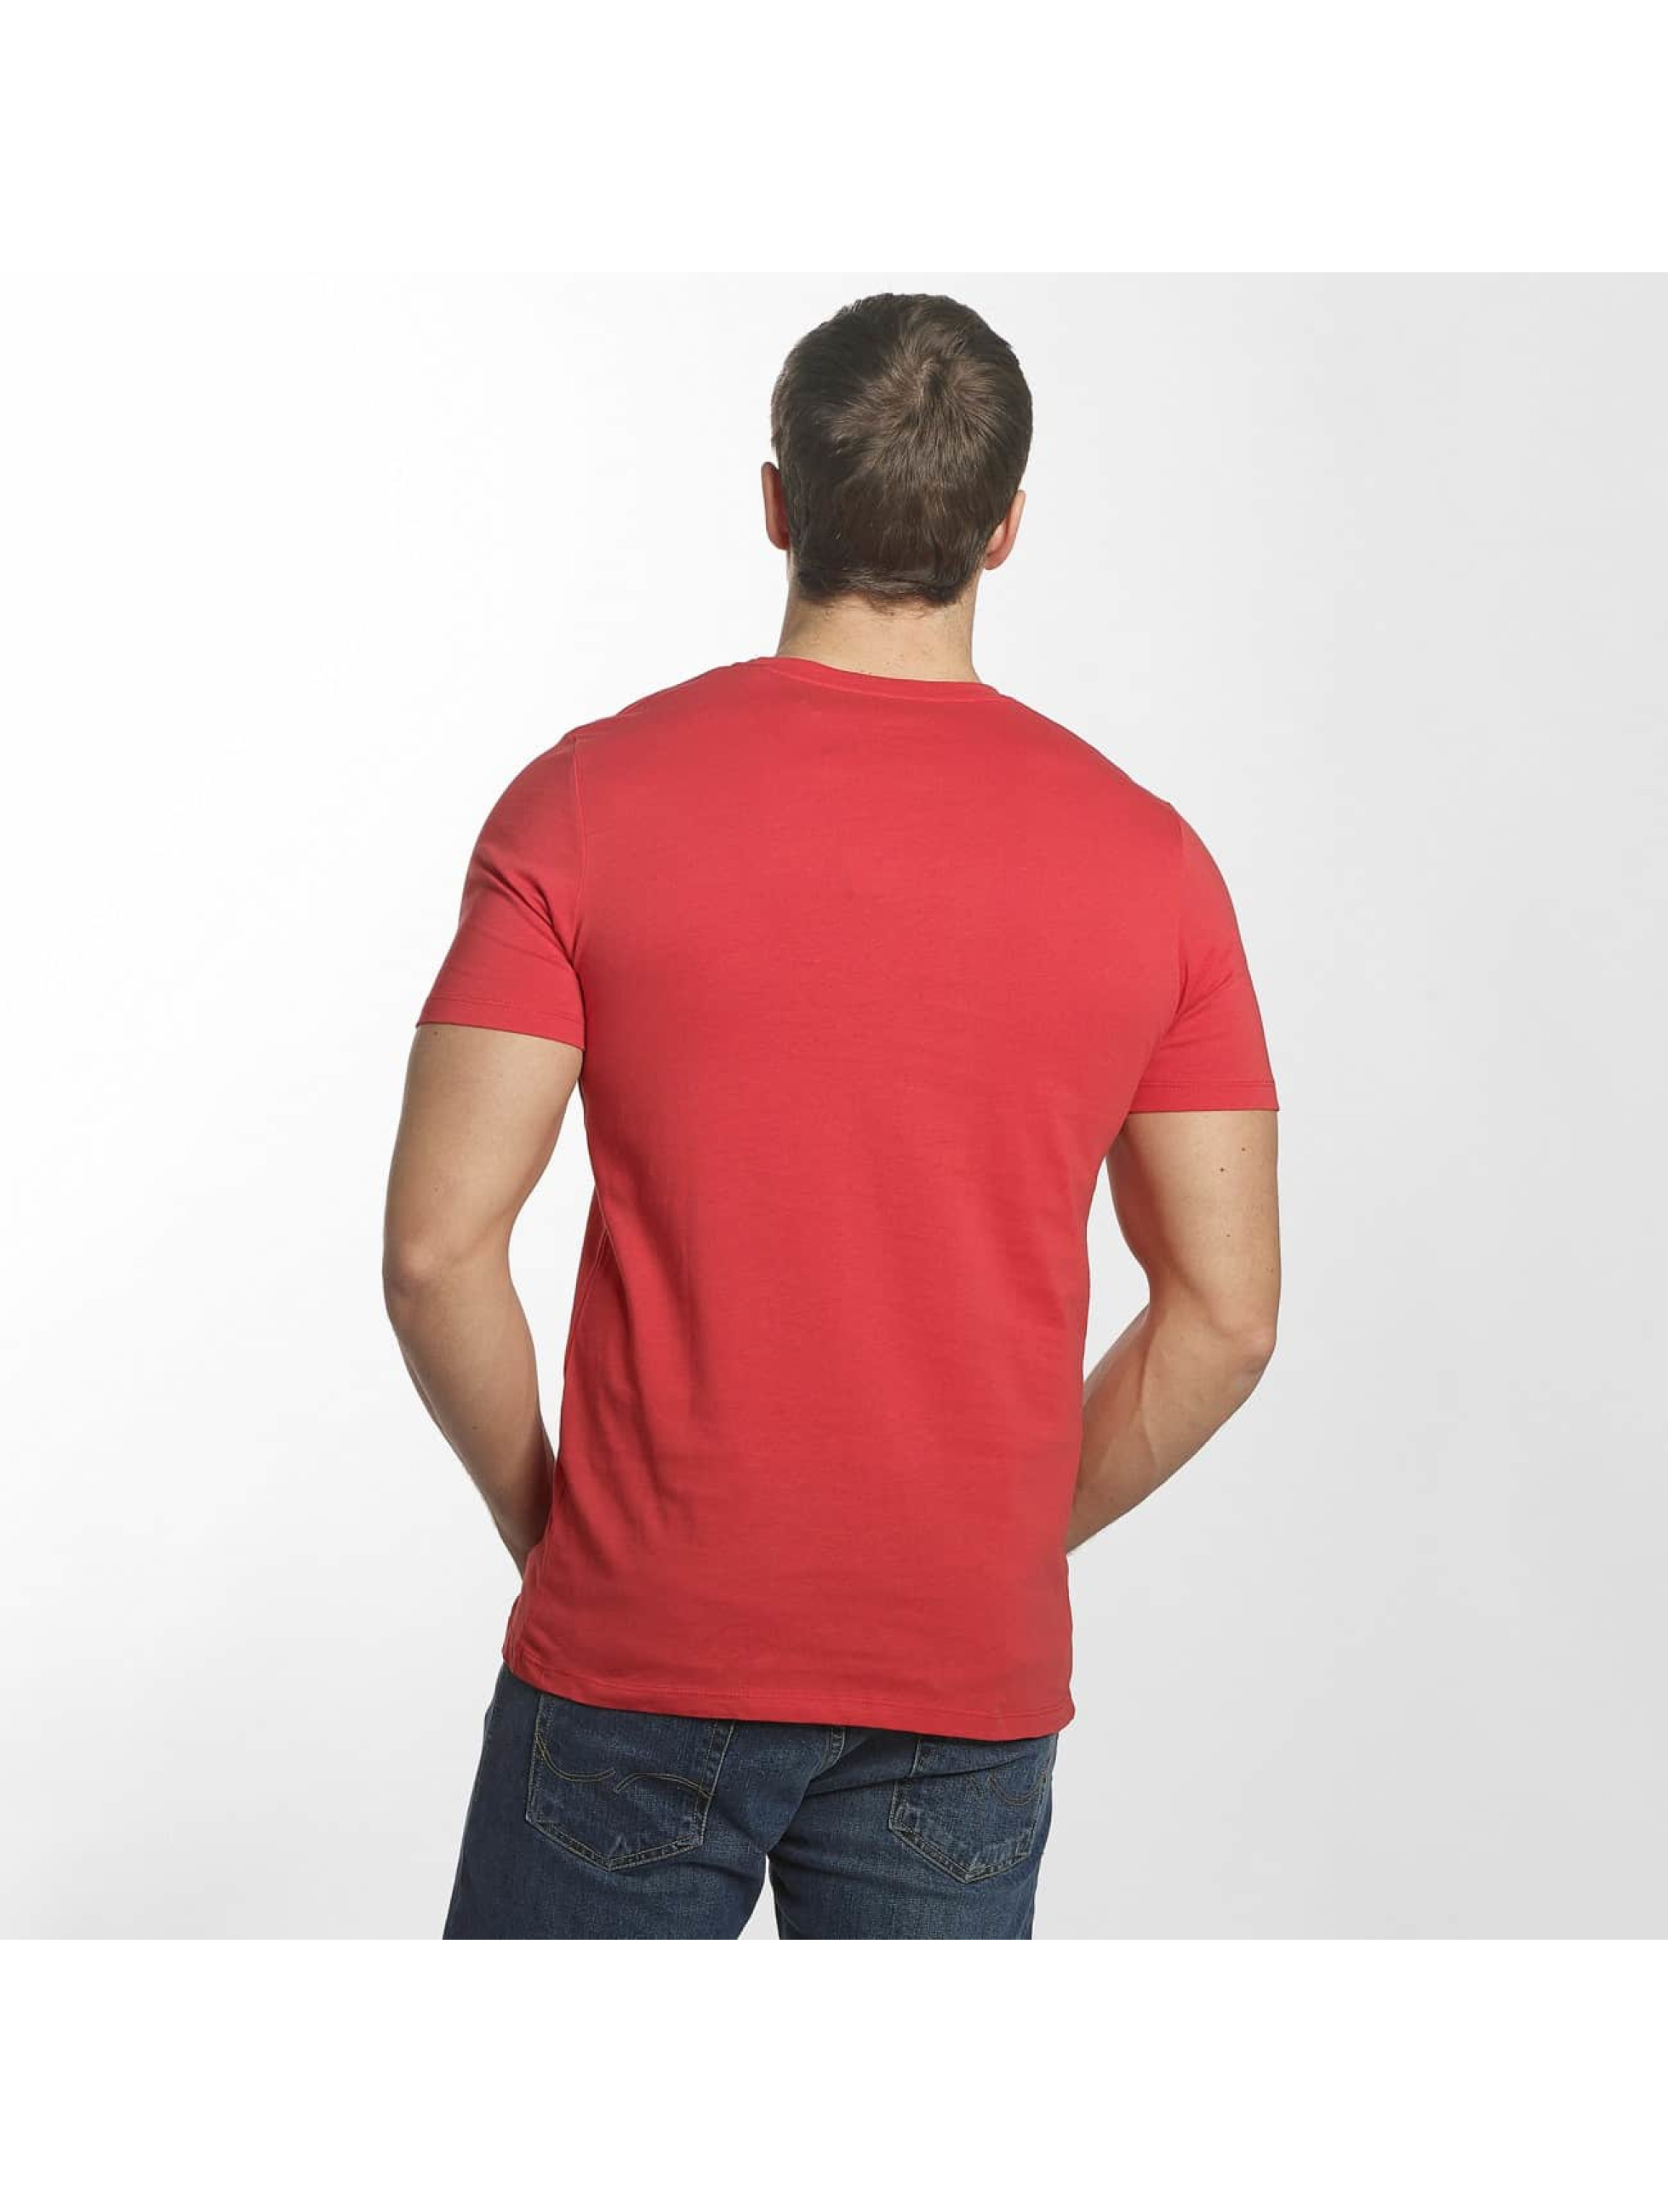 Jack & Jones Camiseta jorMusai rojo